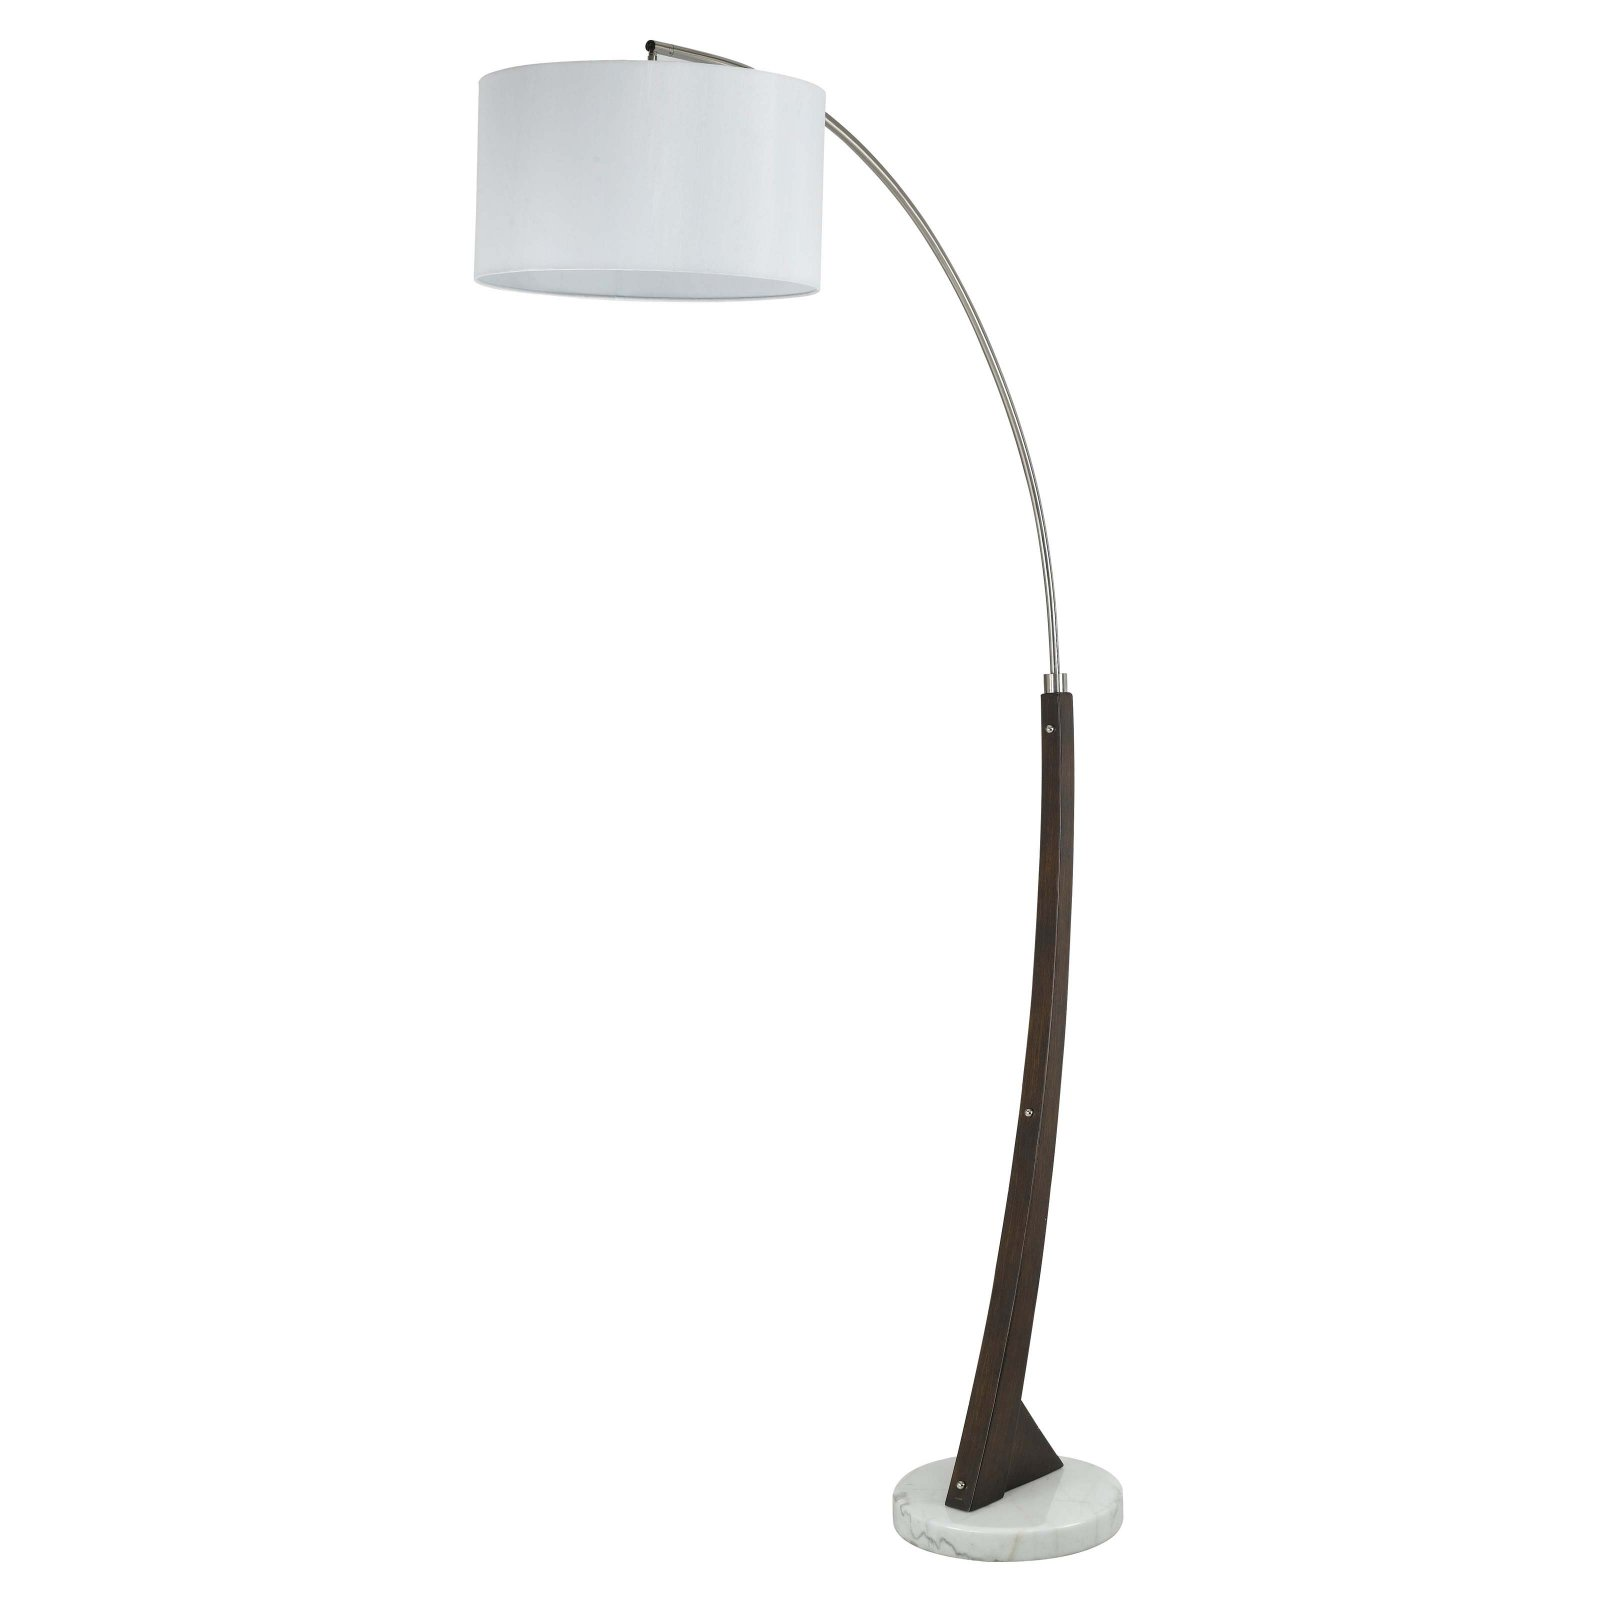 Cal Lighting BO-2033 Arc Floor Lamp with Hardback Fabric Shade by CAL Lighting